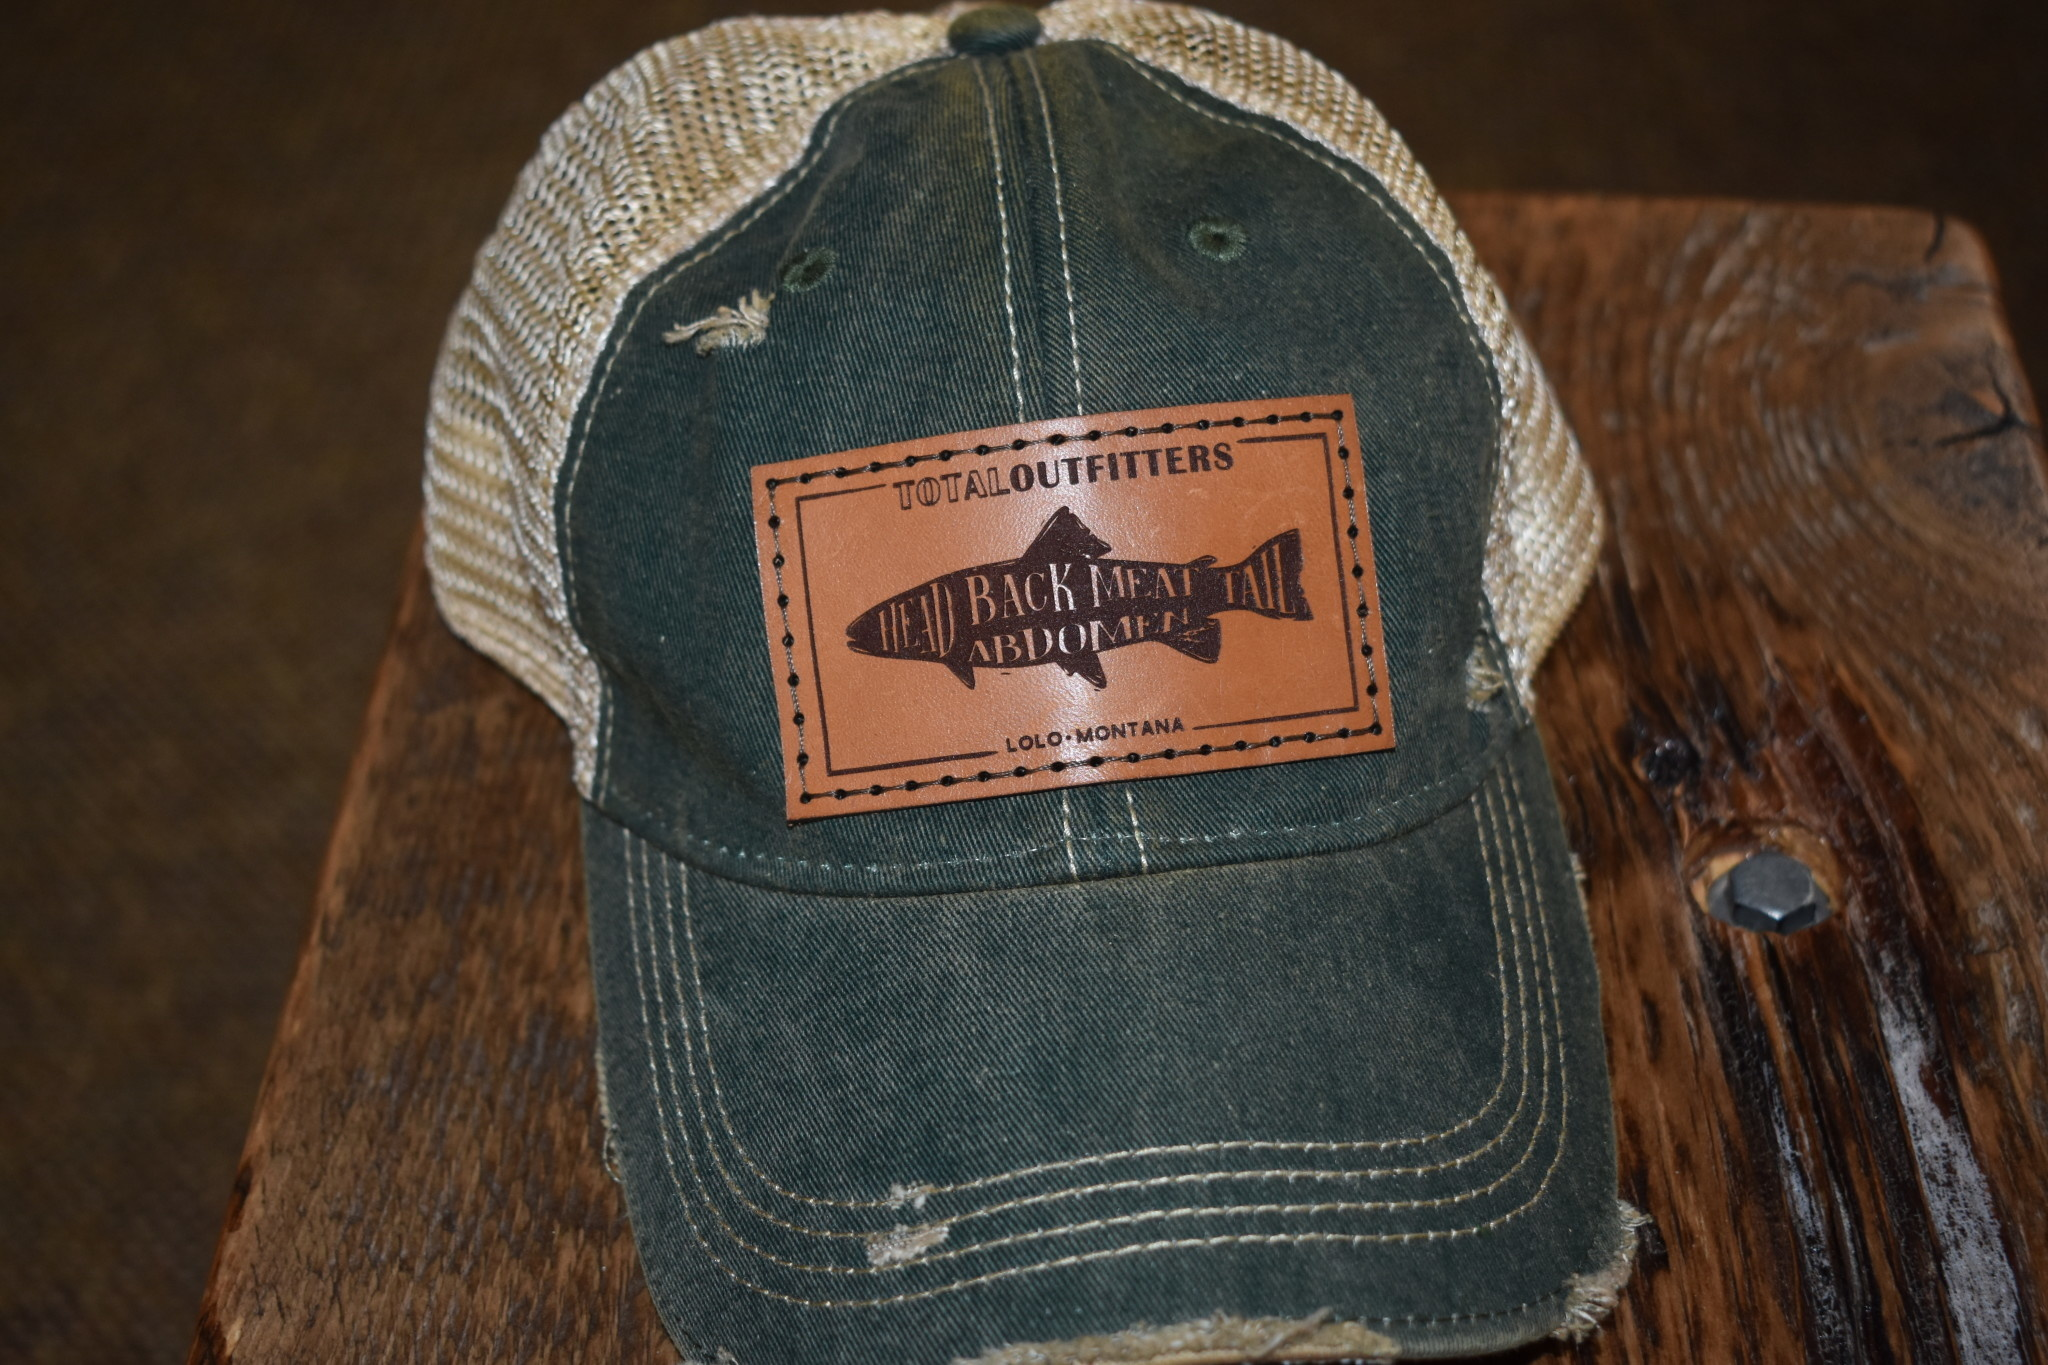 TOTAL OUTFITTERS TOTAL OUTFITTERS LEATHER LOGO HAT